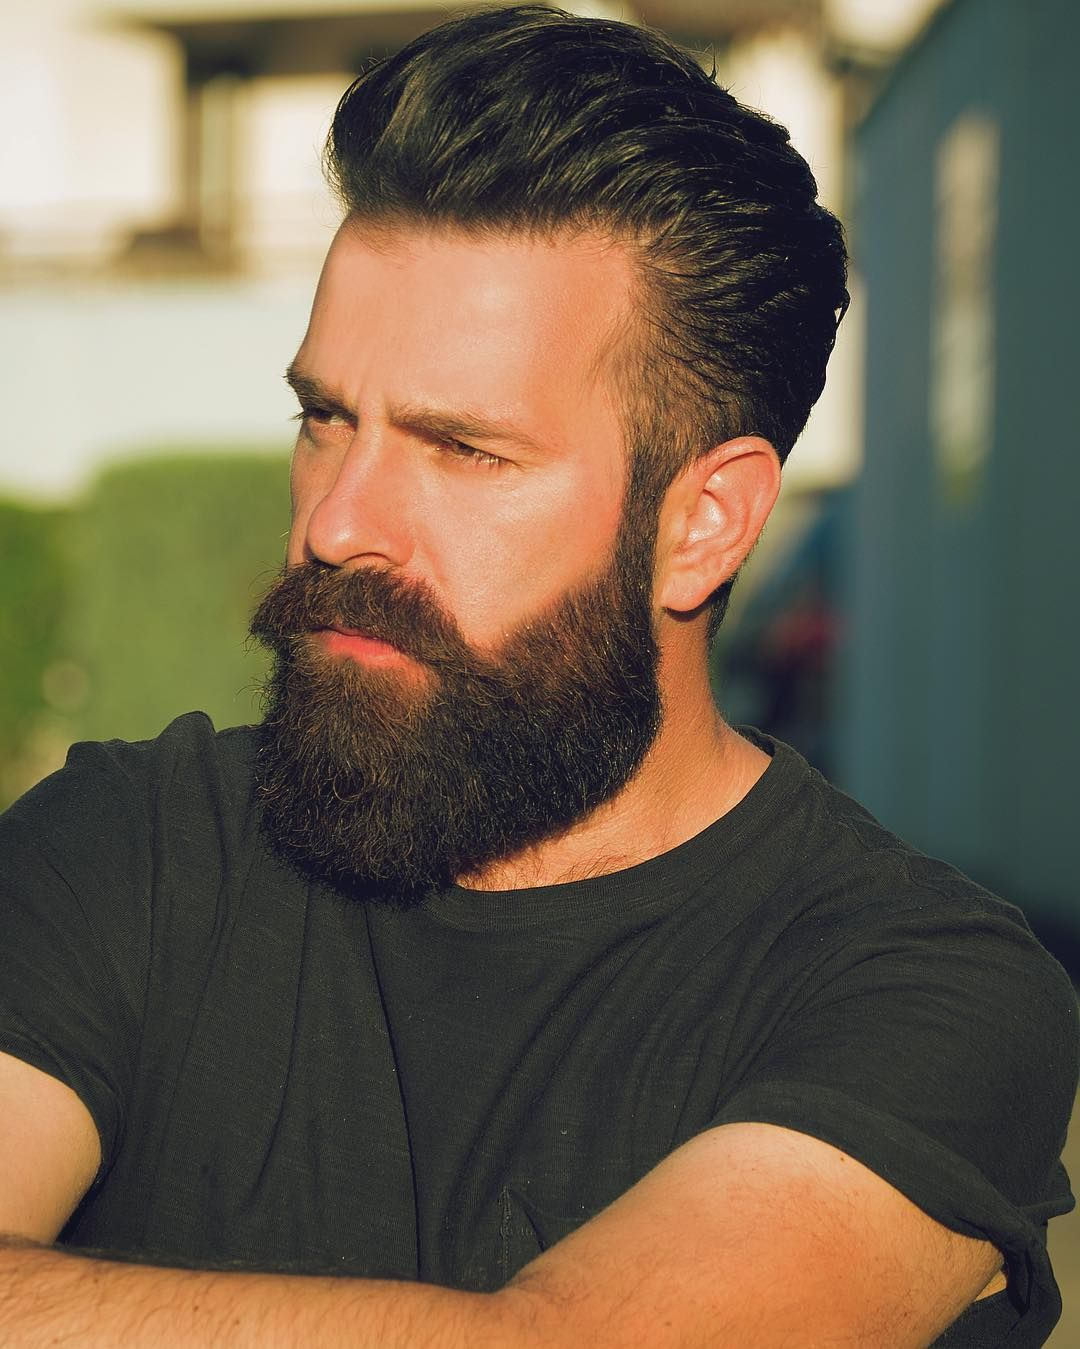 2 875 Curtidas 35 Comentarios Wulli Wuuulli No Instagram What A Great Day Hope You Had A Beard Styles Beard Styles For Men Handsome Bearded Men